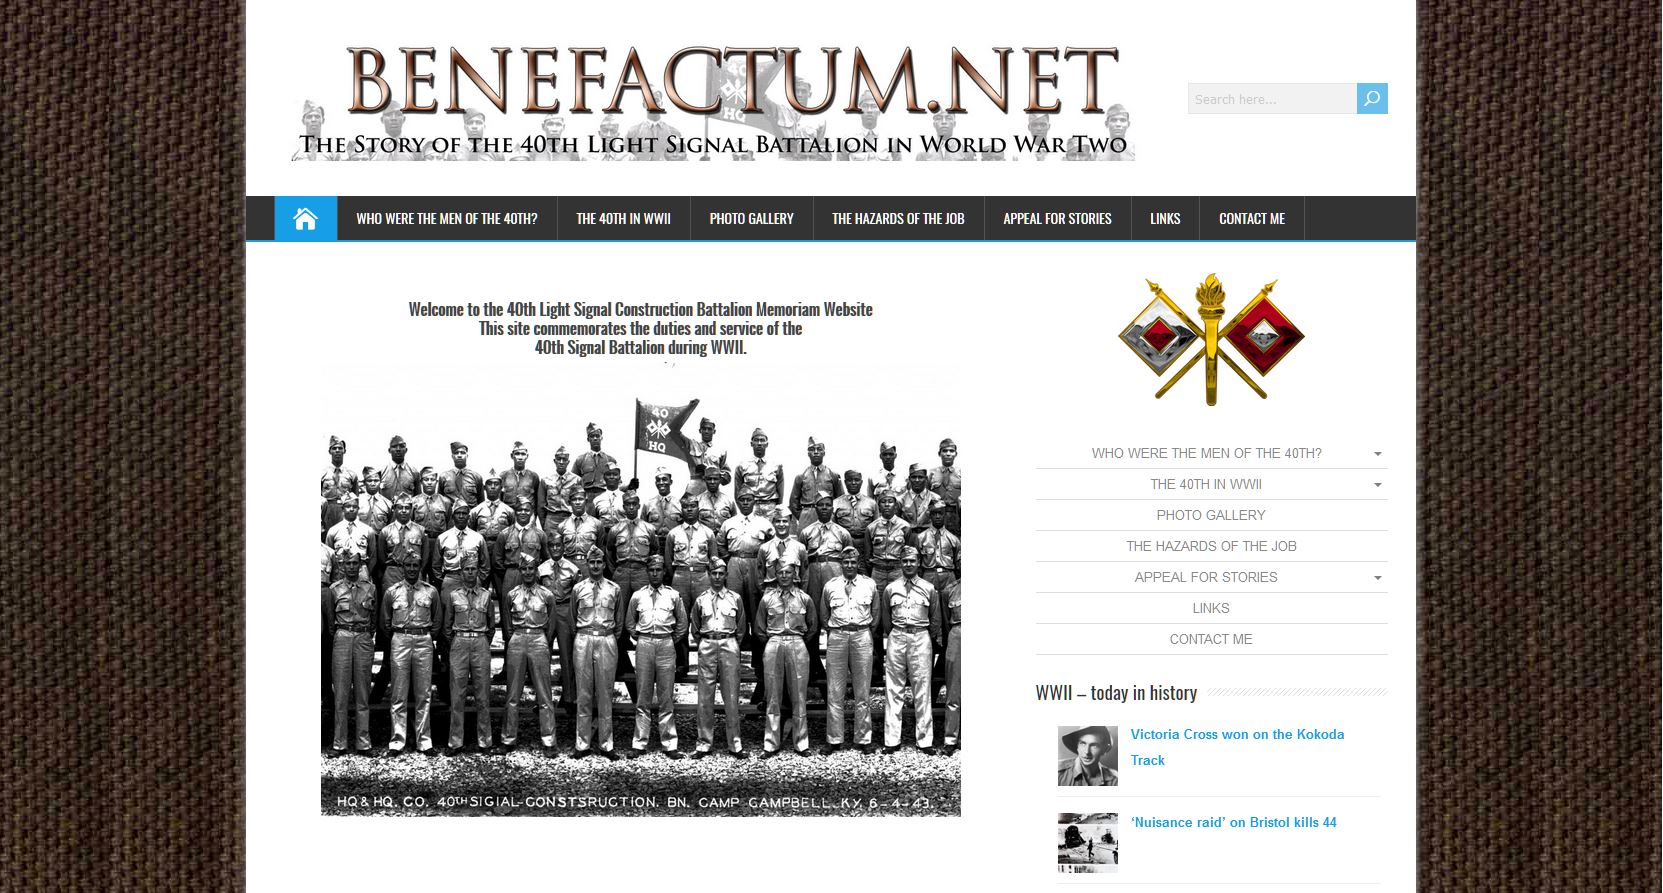 Benefactum net – Welcome to the 40th Light Signal